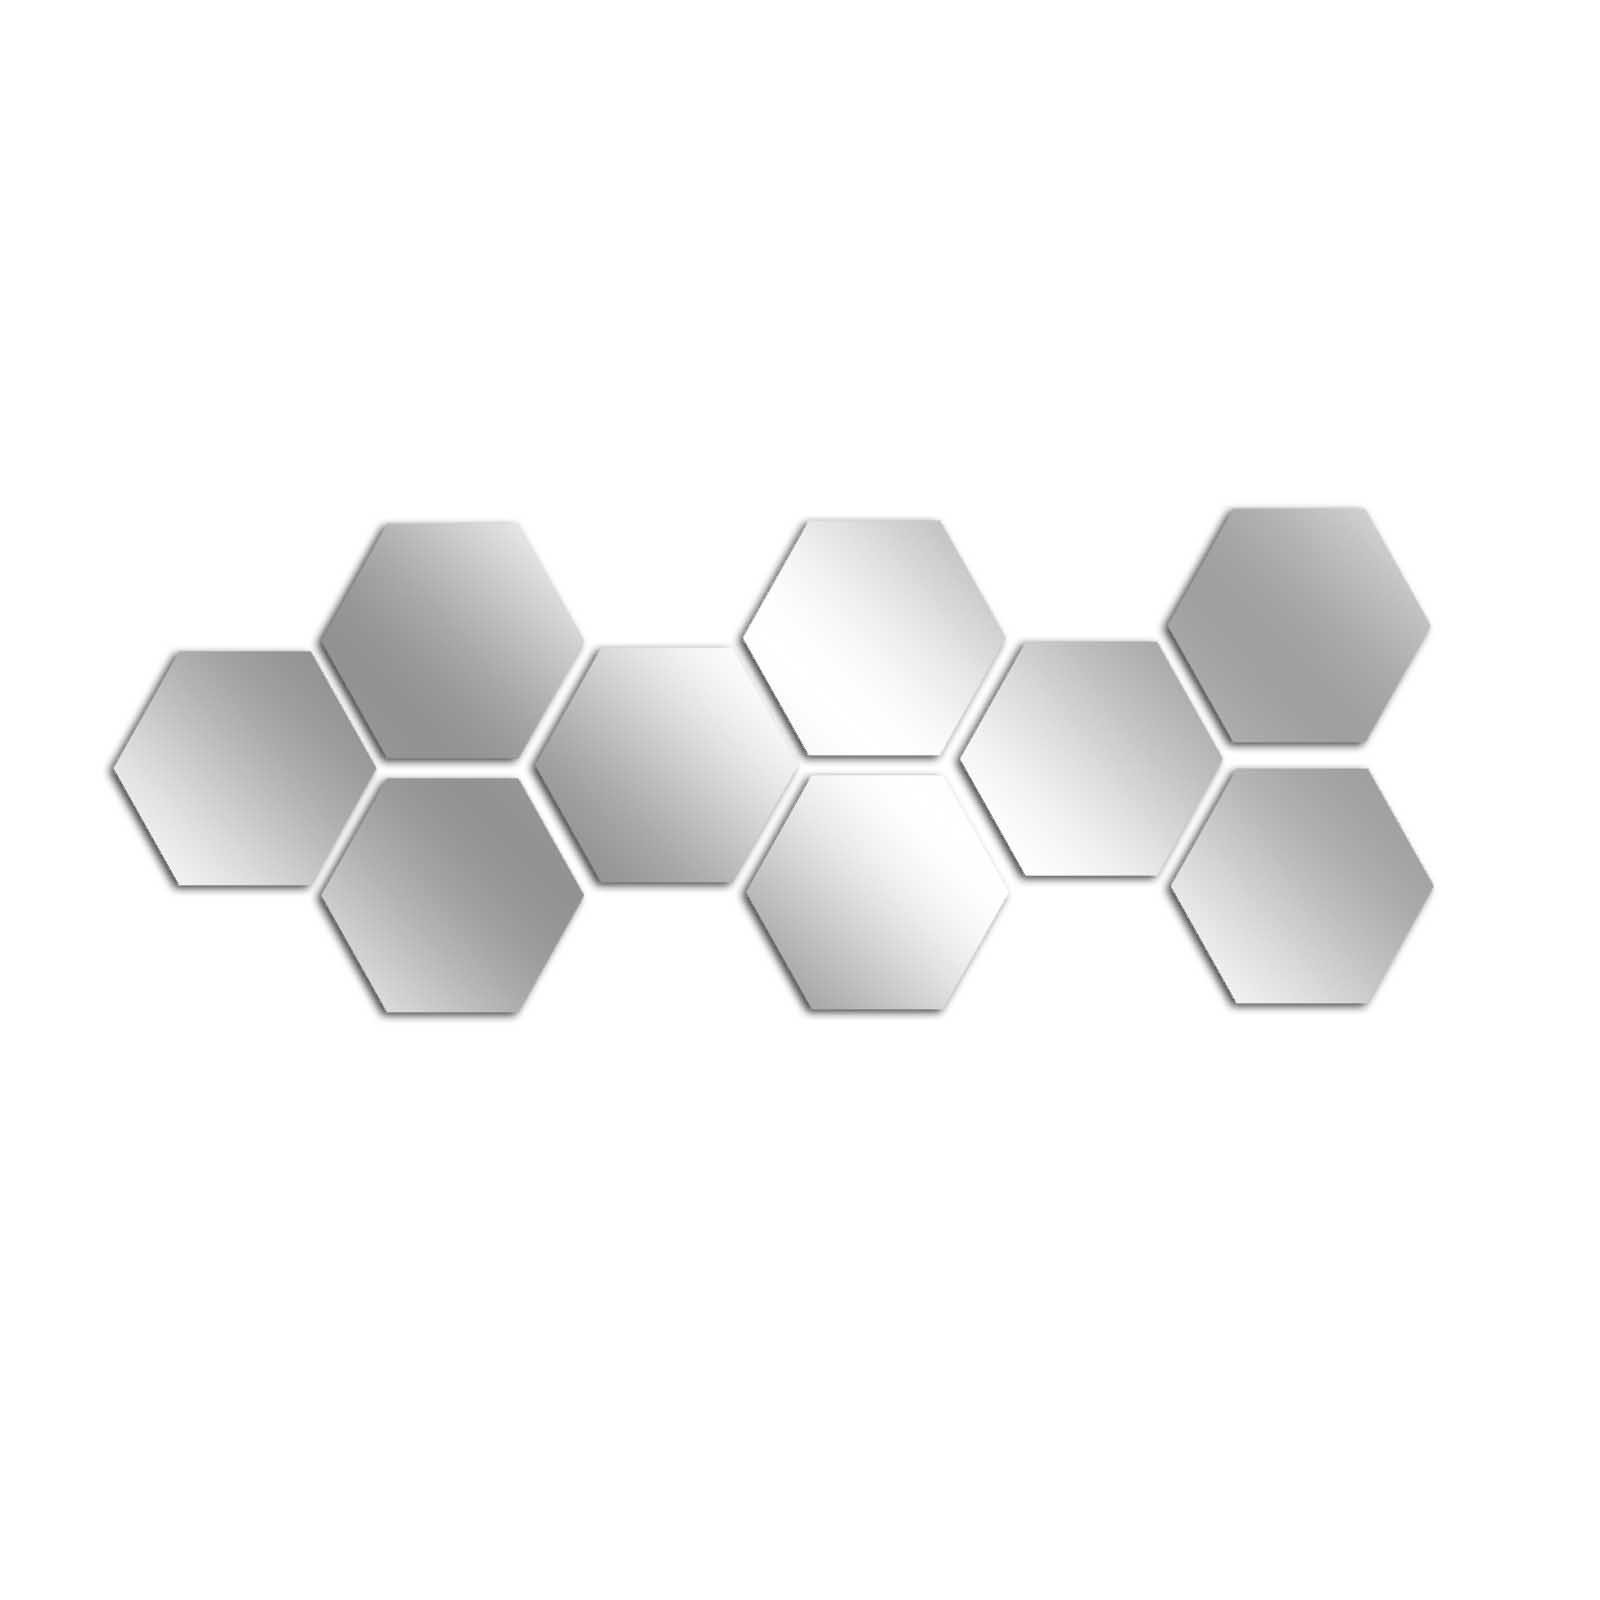 Decorative Removable Wall Sticker Mirror PLEXIGLASS (20.5'' x 7.9'') Number of Pieces 9 / Glass Modern Art Pattern Ornamental Design Beehive / Background Decoration Perfect Design For Home, Office, Room by LaModaHome (Image #3)